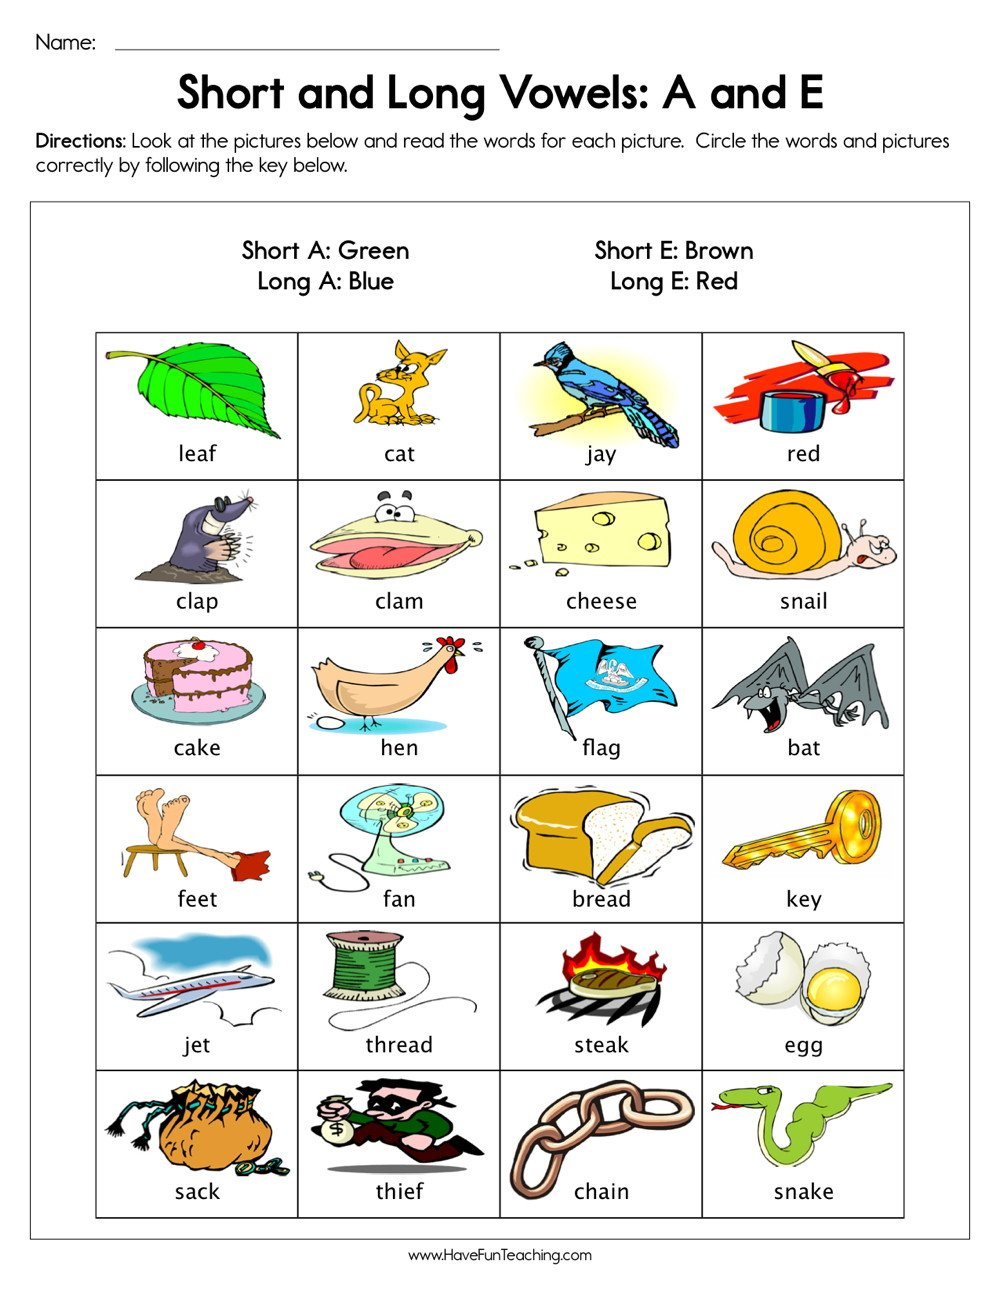 Long Vowel sounds Worksheets Short and Long Vowels A and E Worksheet